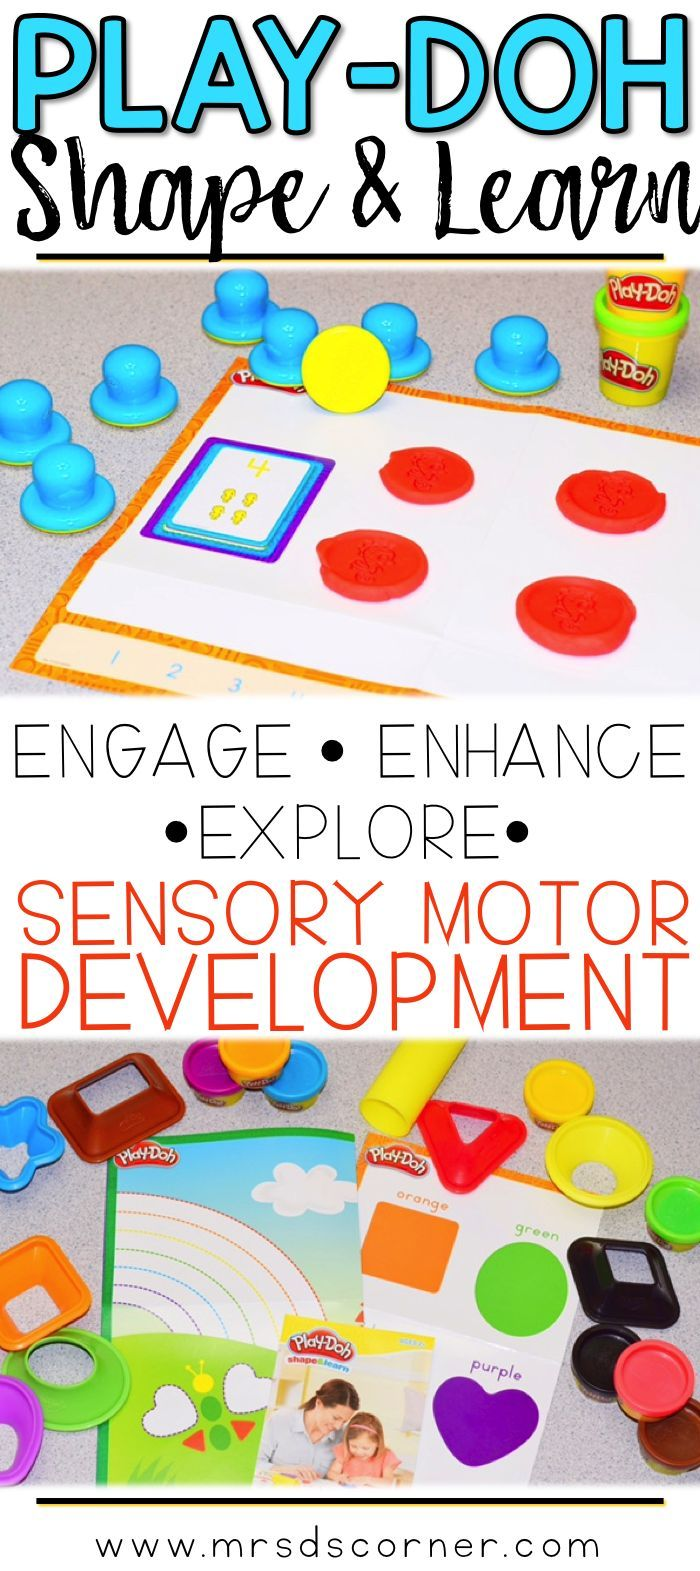 Engage and explore with PlayDoh's Shape and Learn sets. Perfect for enhancing sensory motor development and fine motor skills. Make learning fun with PlayDoh! Blog Post at Mrs. D's Corner.